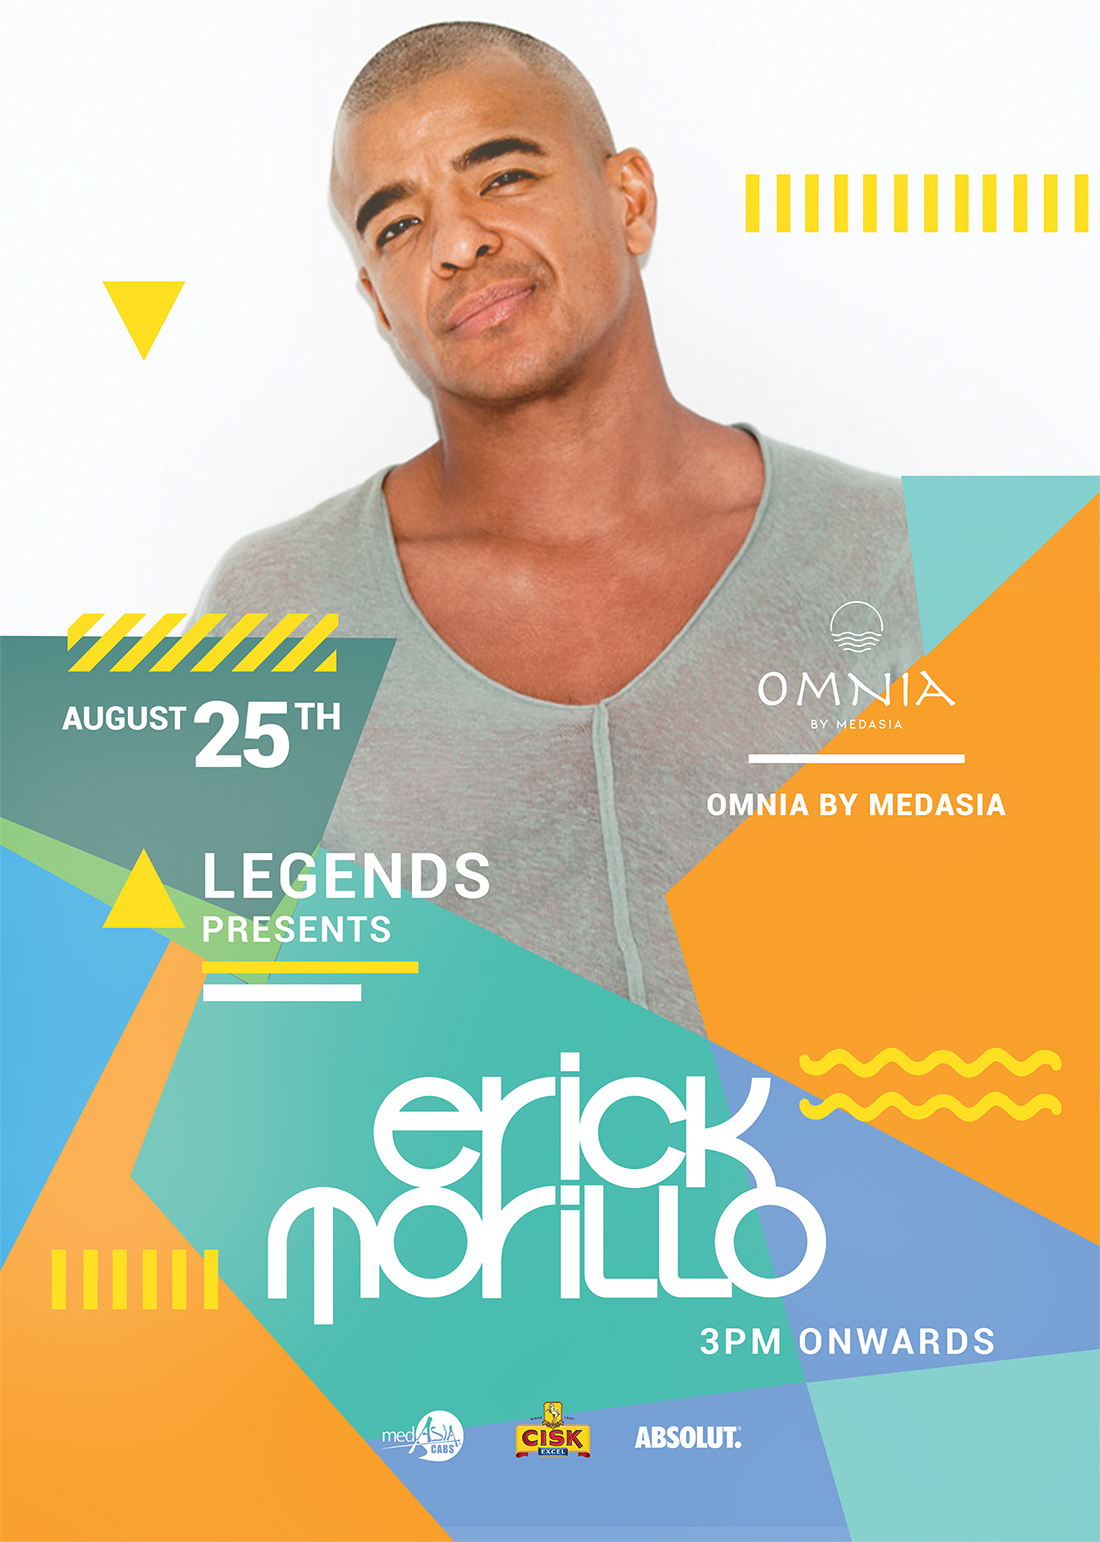 Erick Morillo - Legends at Omnia by MedAsia flyer